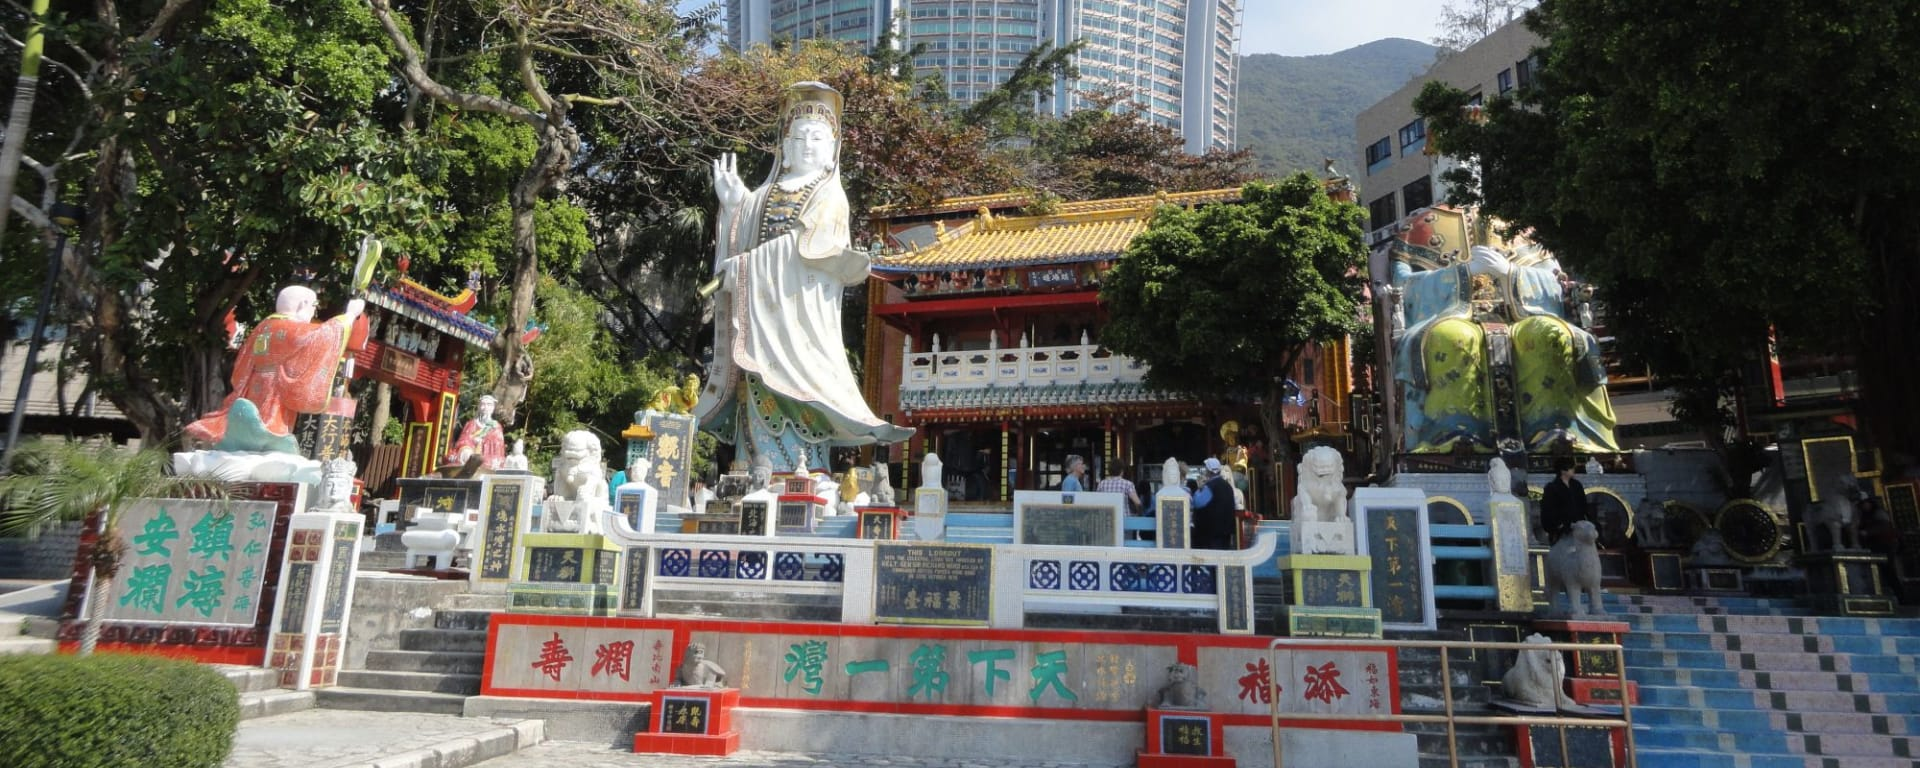 Hong Kong Island Tour: Hong Kong Repulse Bay